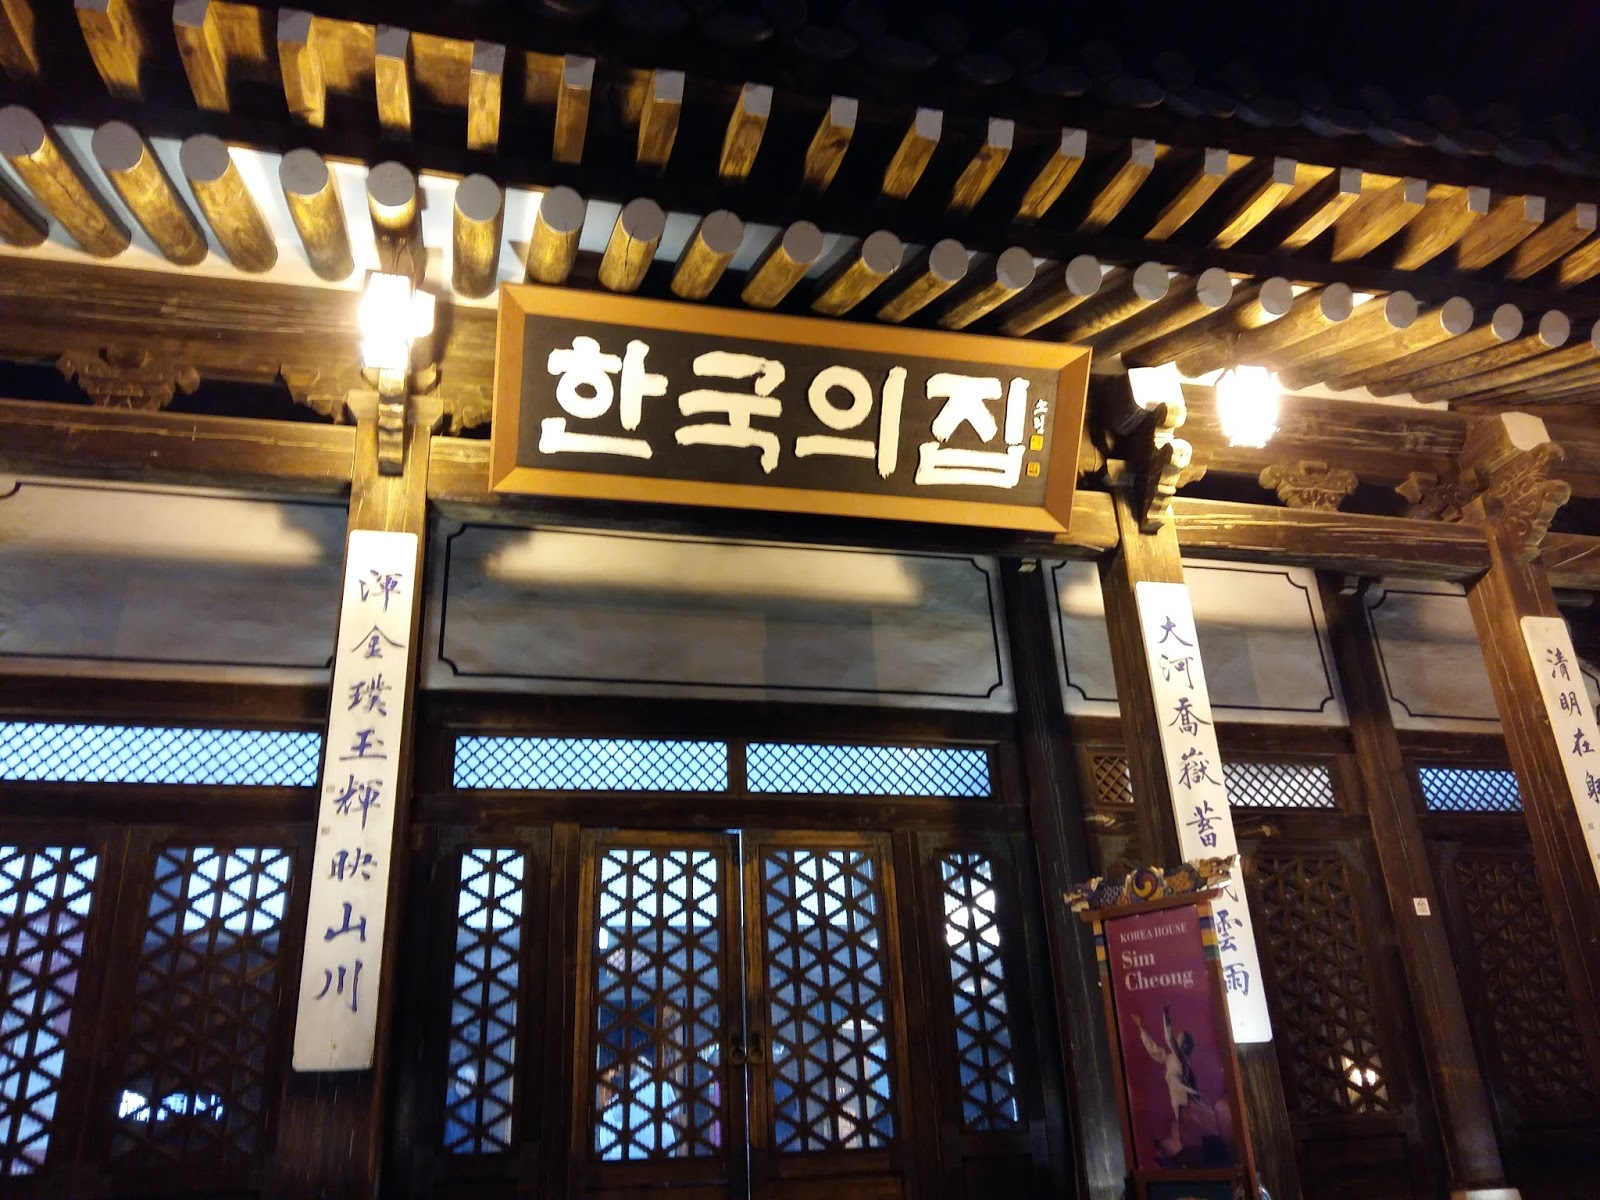 Korean traditional performance arts discover shim cheongs tale korean traditional performance arts discover shim cheongs tale at korea house biocorpaavc Images